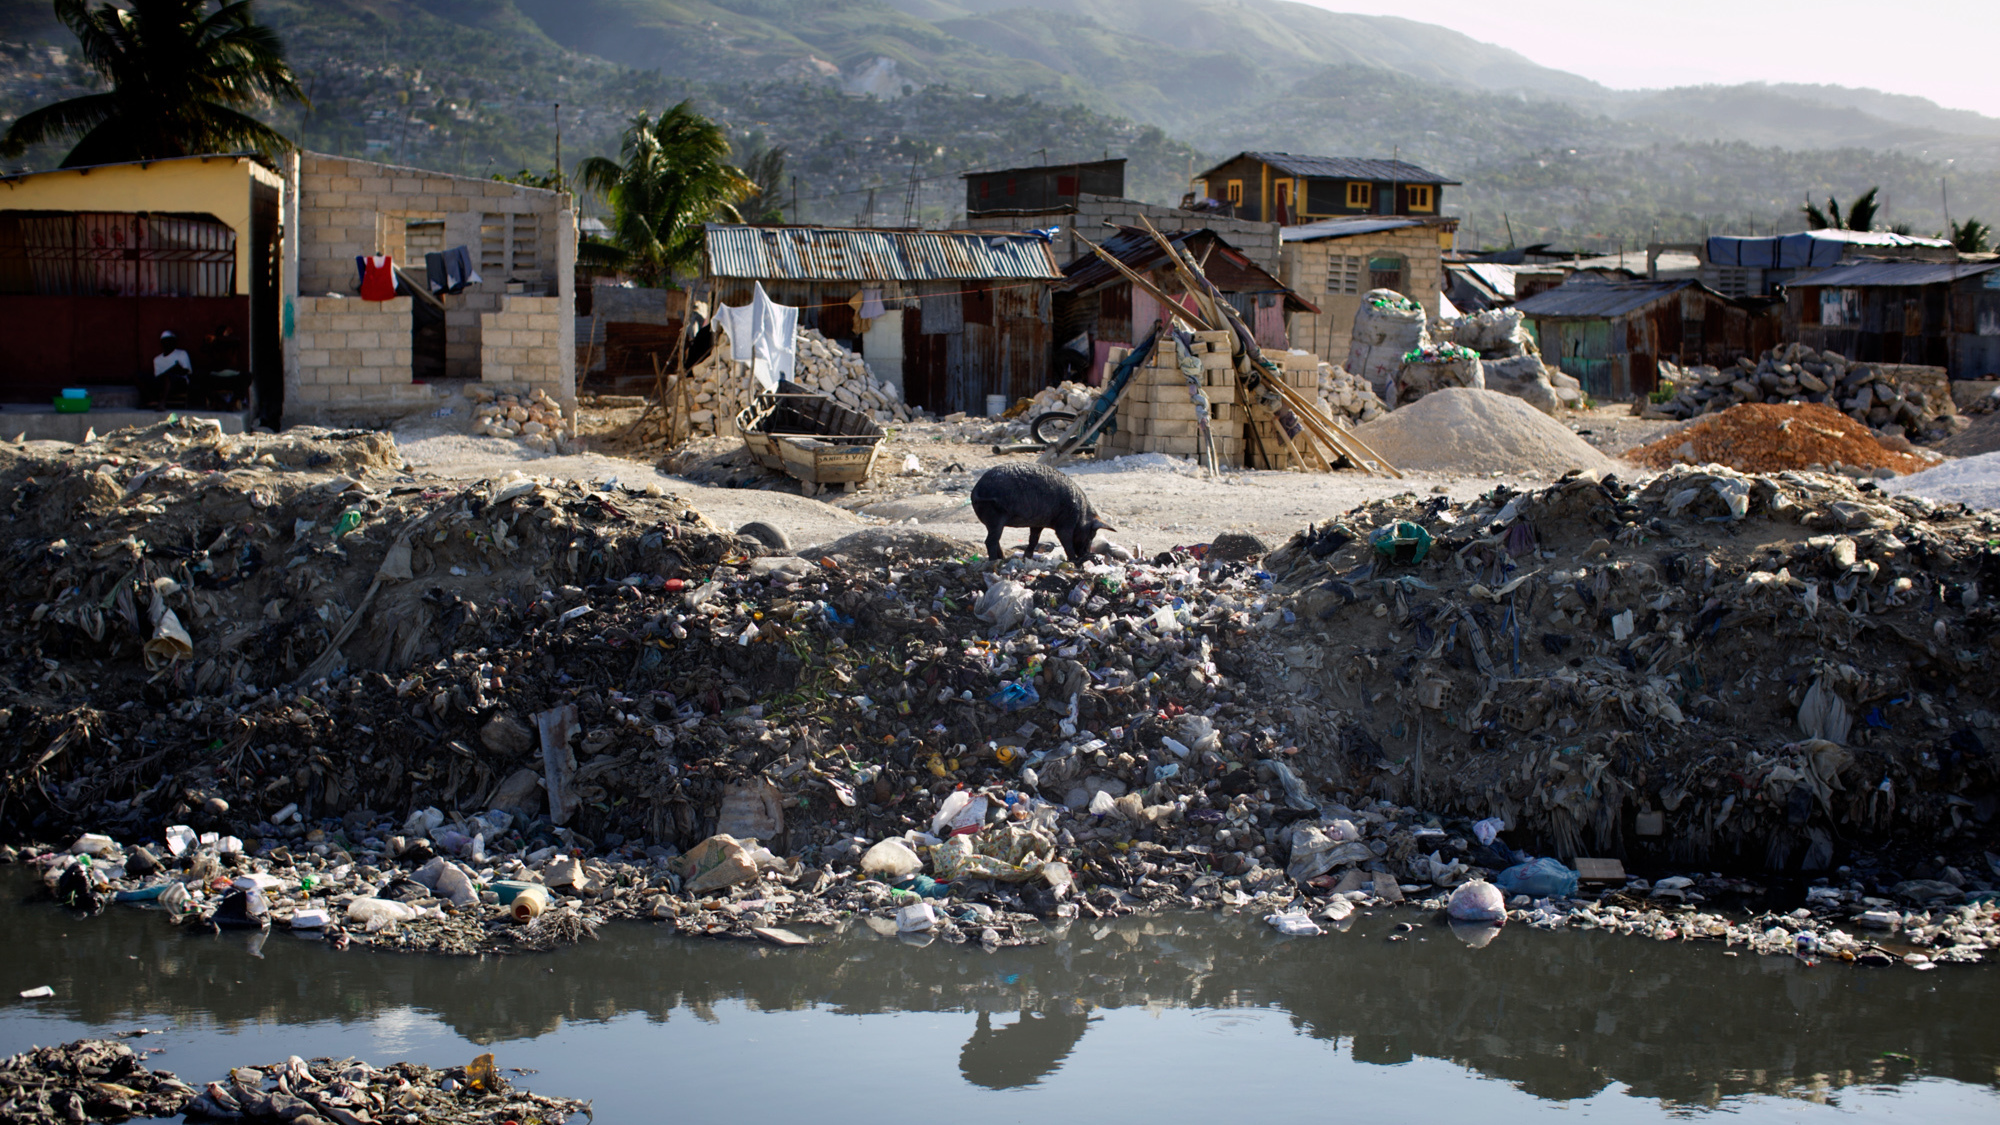 Sewage Cleaner Haiti Millions Spent On Sewage Systems And Still Nowhere To Go